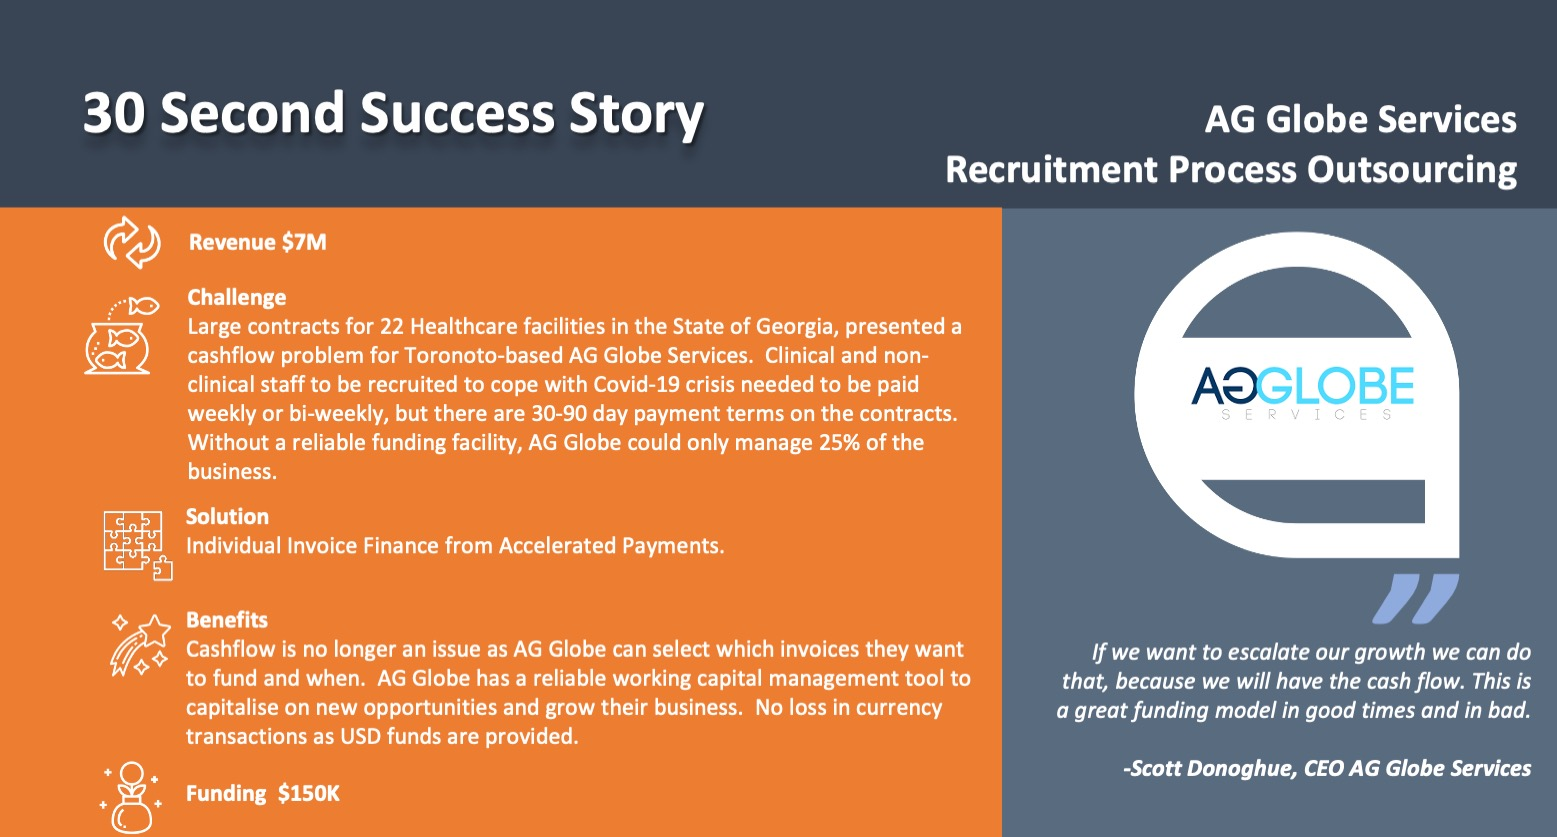 AG Gobe Services use Invoice Finance case study